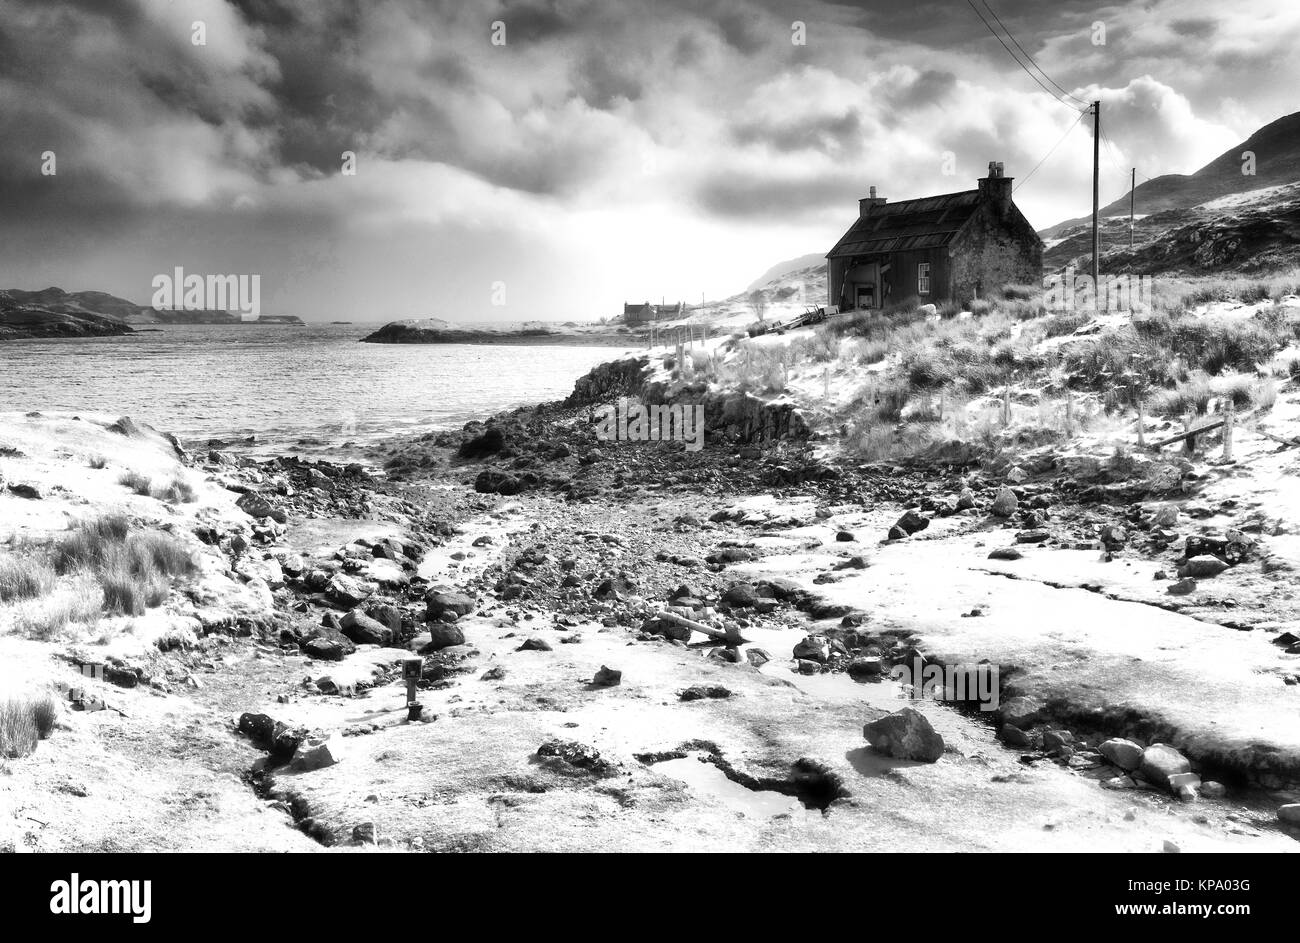 Abandoned croft at Orinsay, Isle of Lewis, Outer Hebrides. Converted to monochrome and given an infrared treatment. - Stock Image